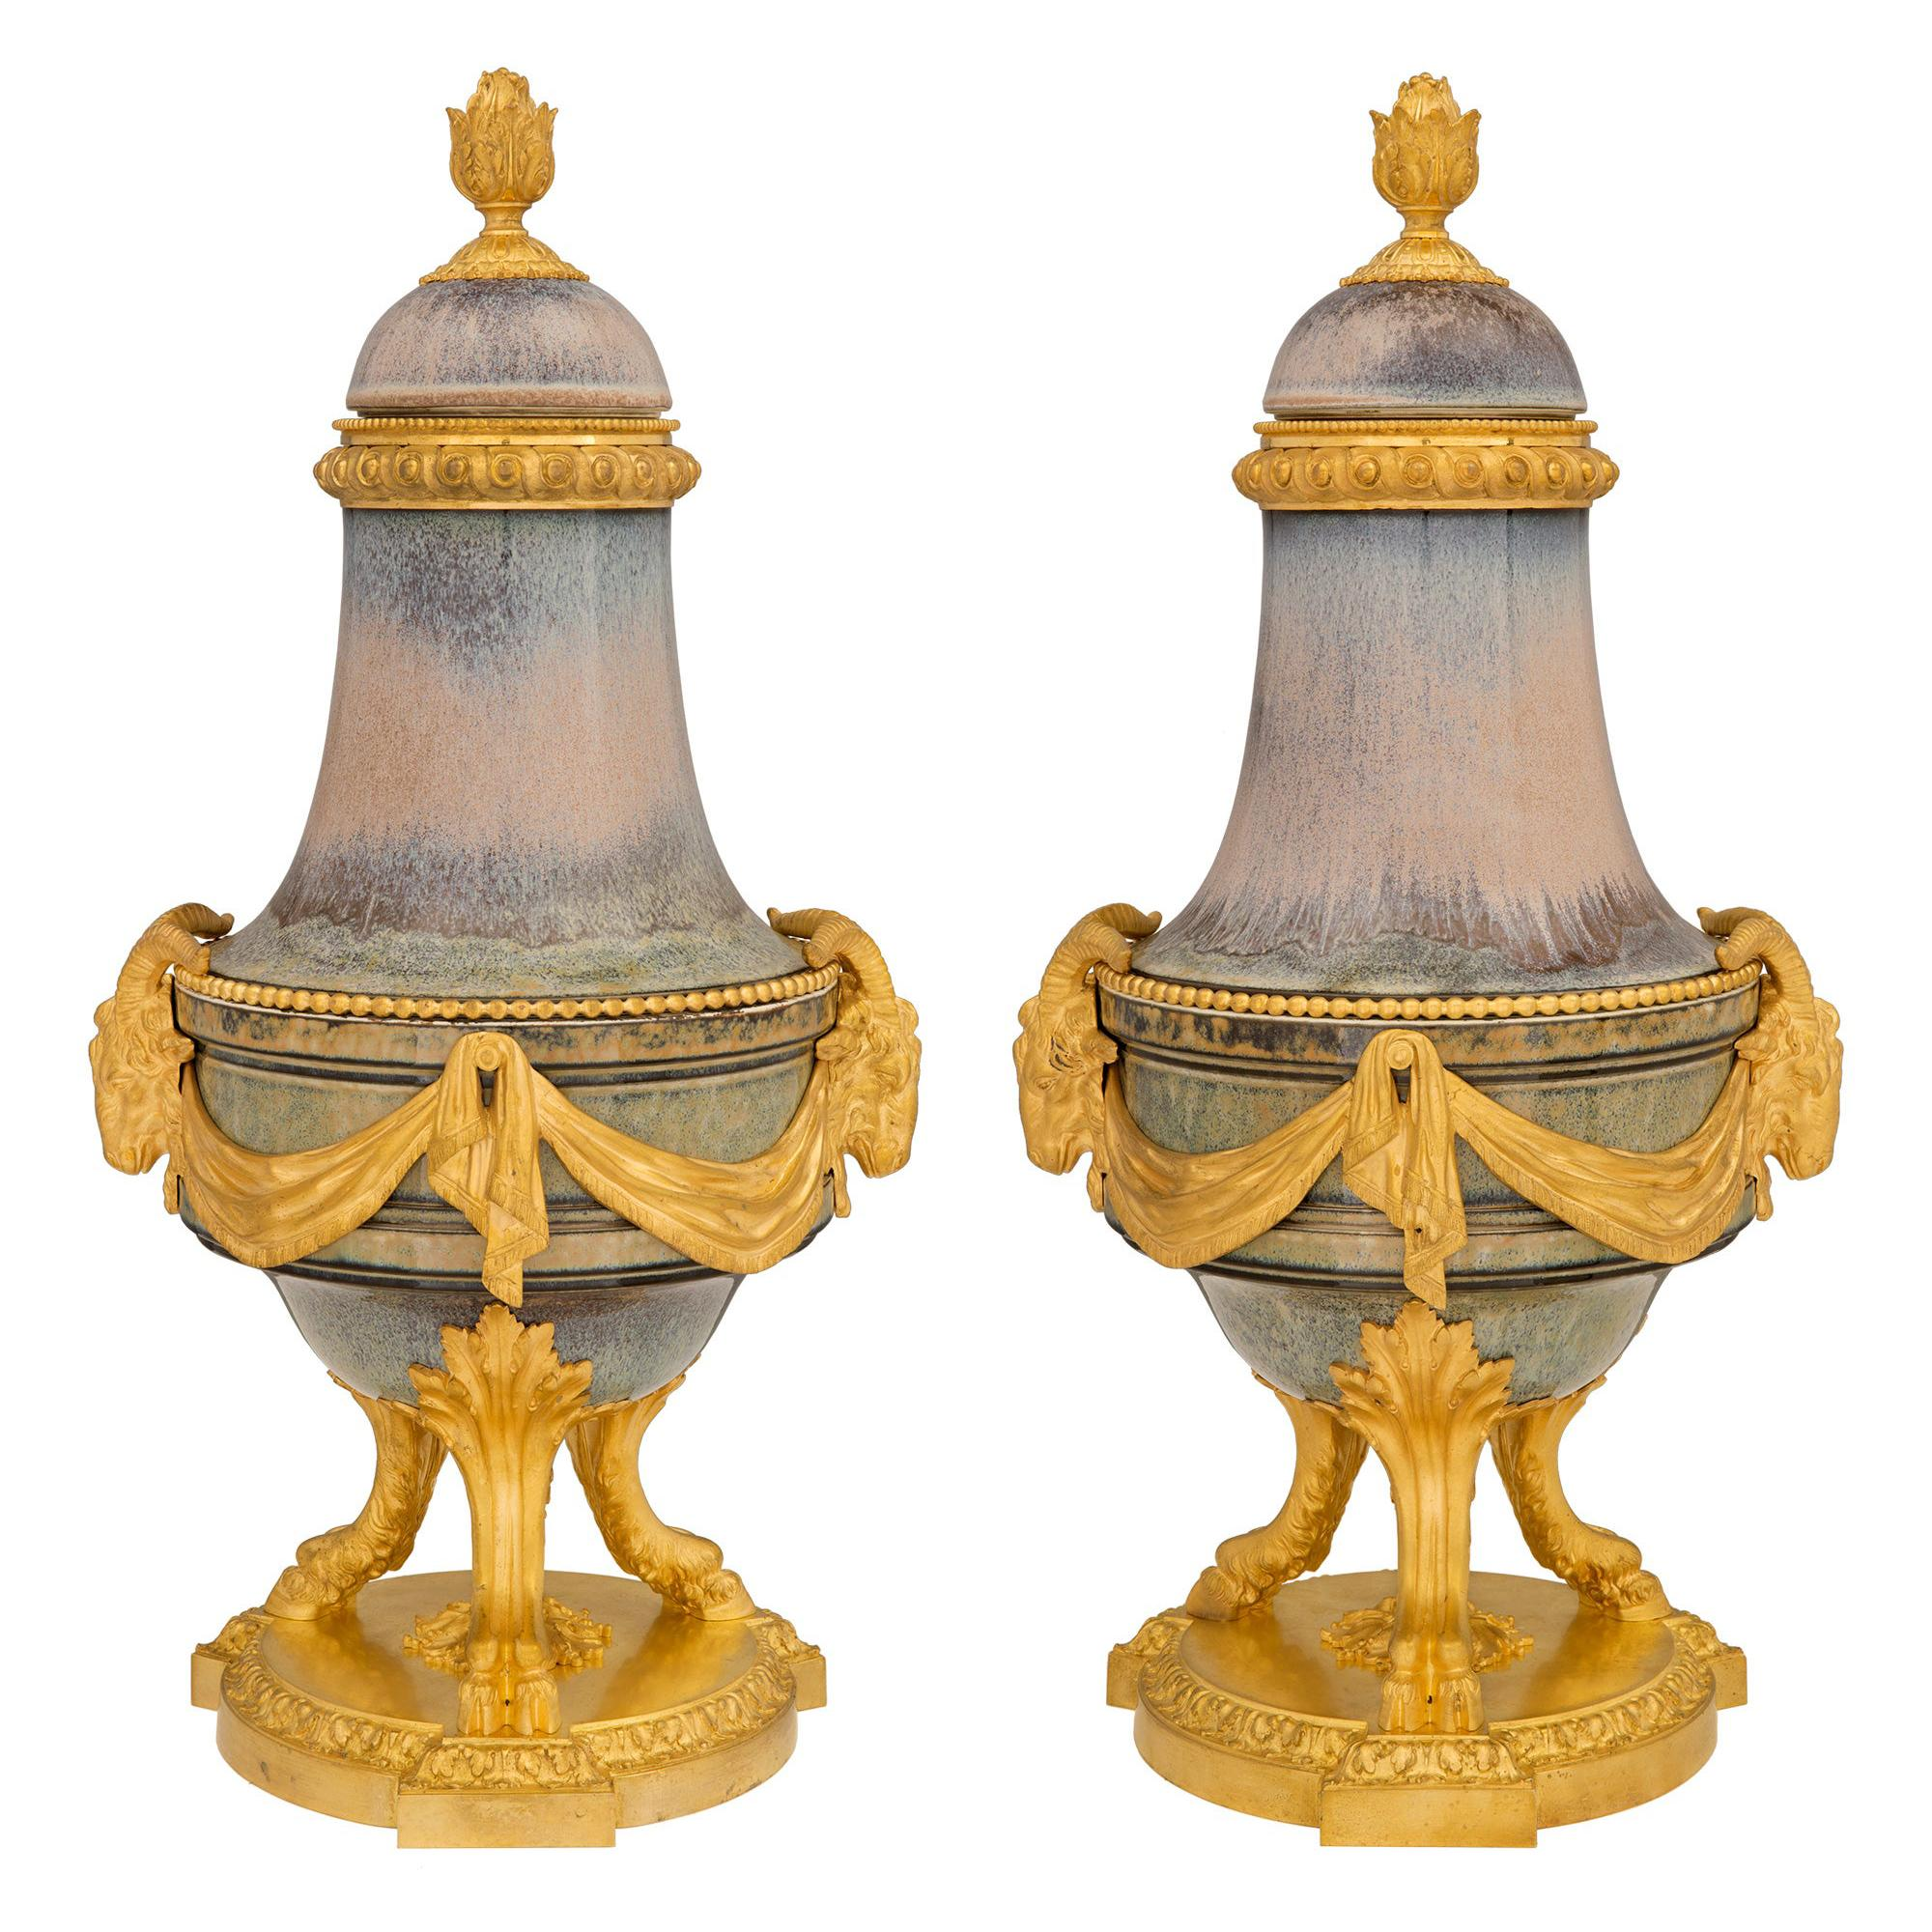 Pair of French 19th Century Louis XVI St. Porcelain and Ormolu Lidded Urns